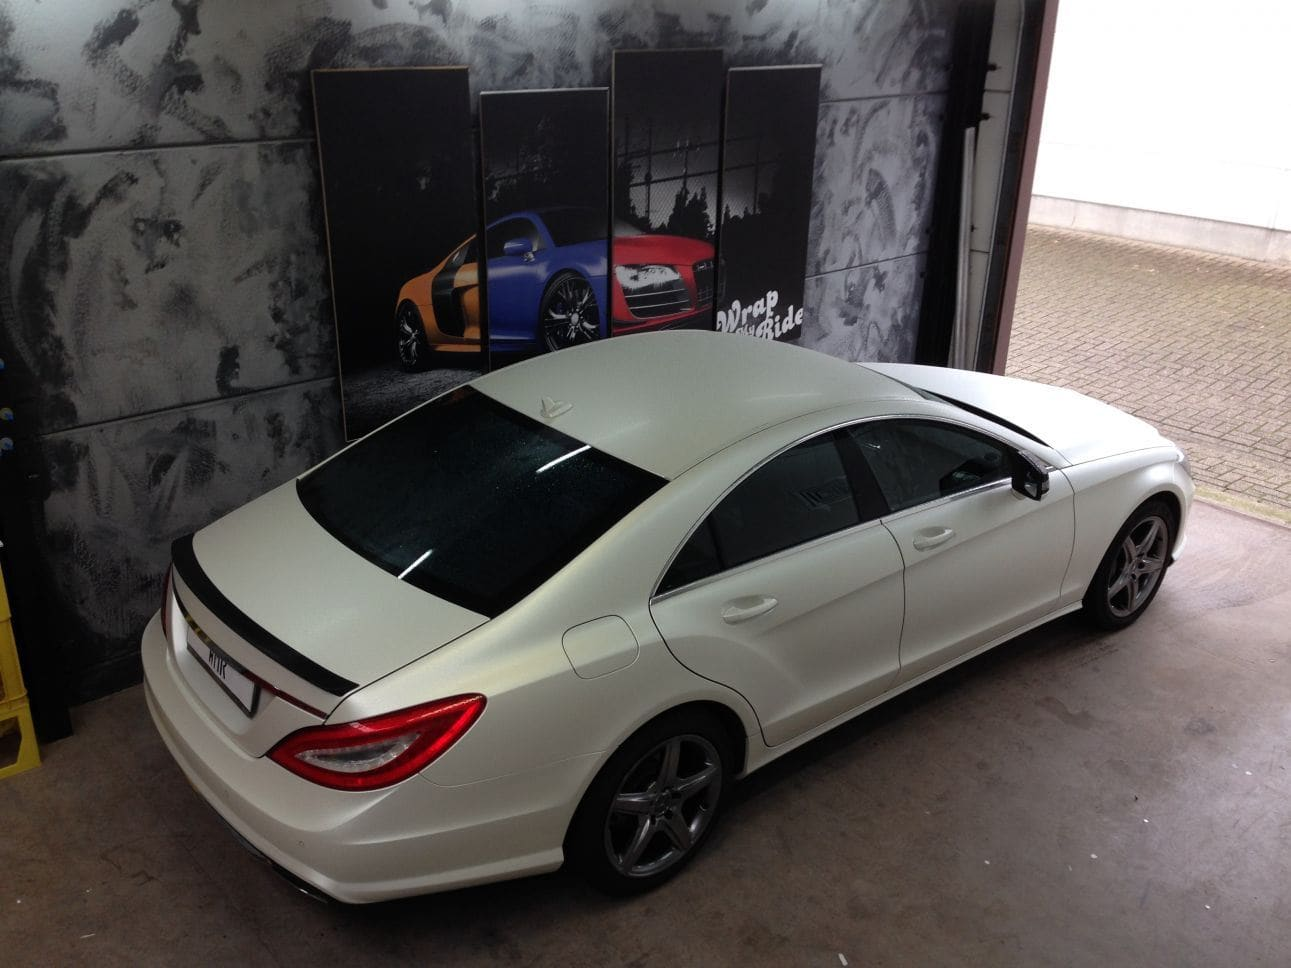 Mercedes CLS met White Satin Pearl Wrap, Carwrapping door Wrapmyride.nu Foto-nr:6218, ©2021